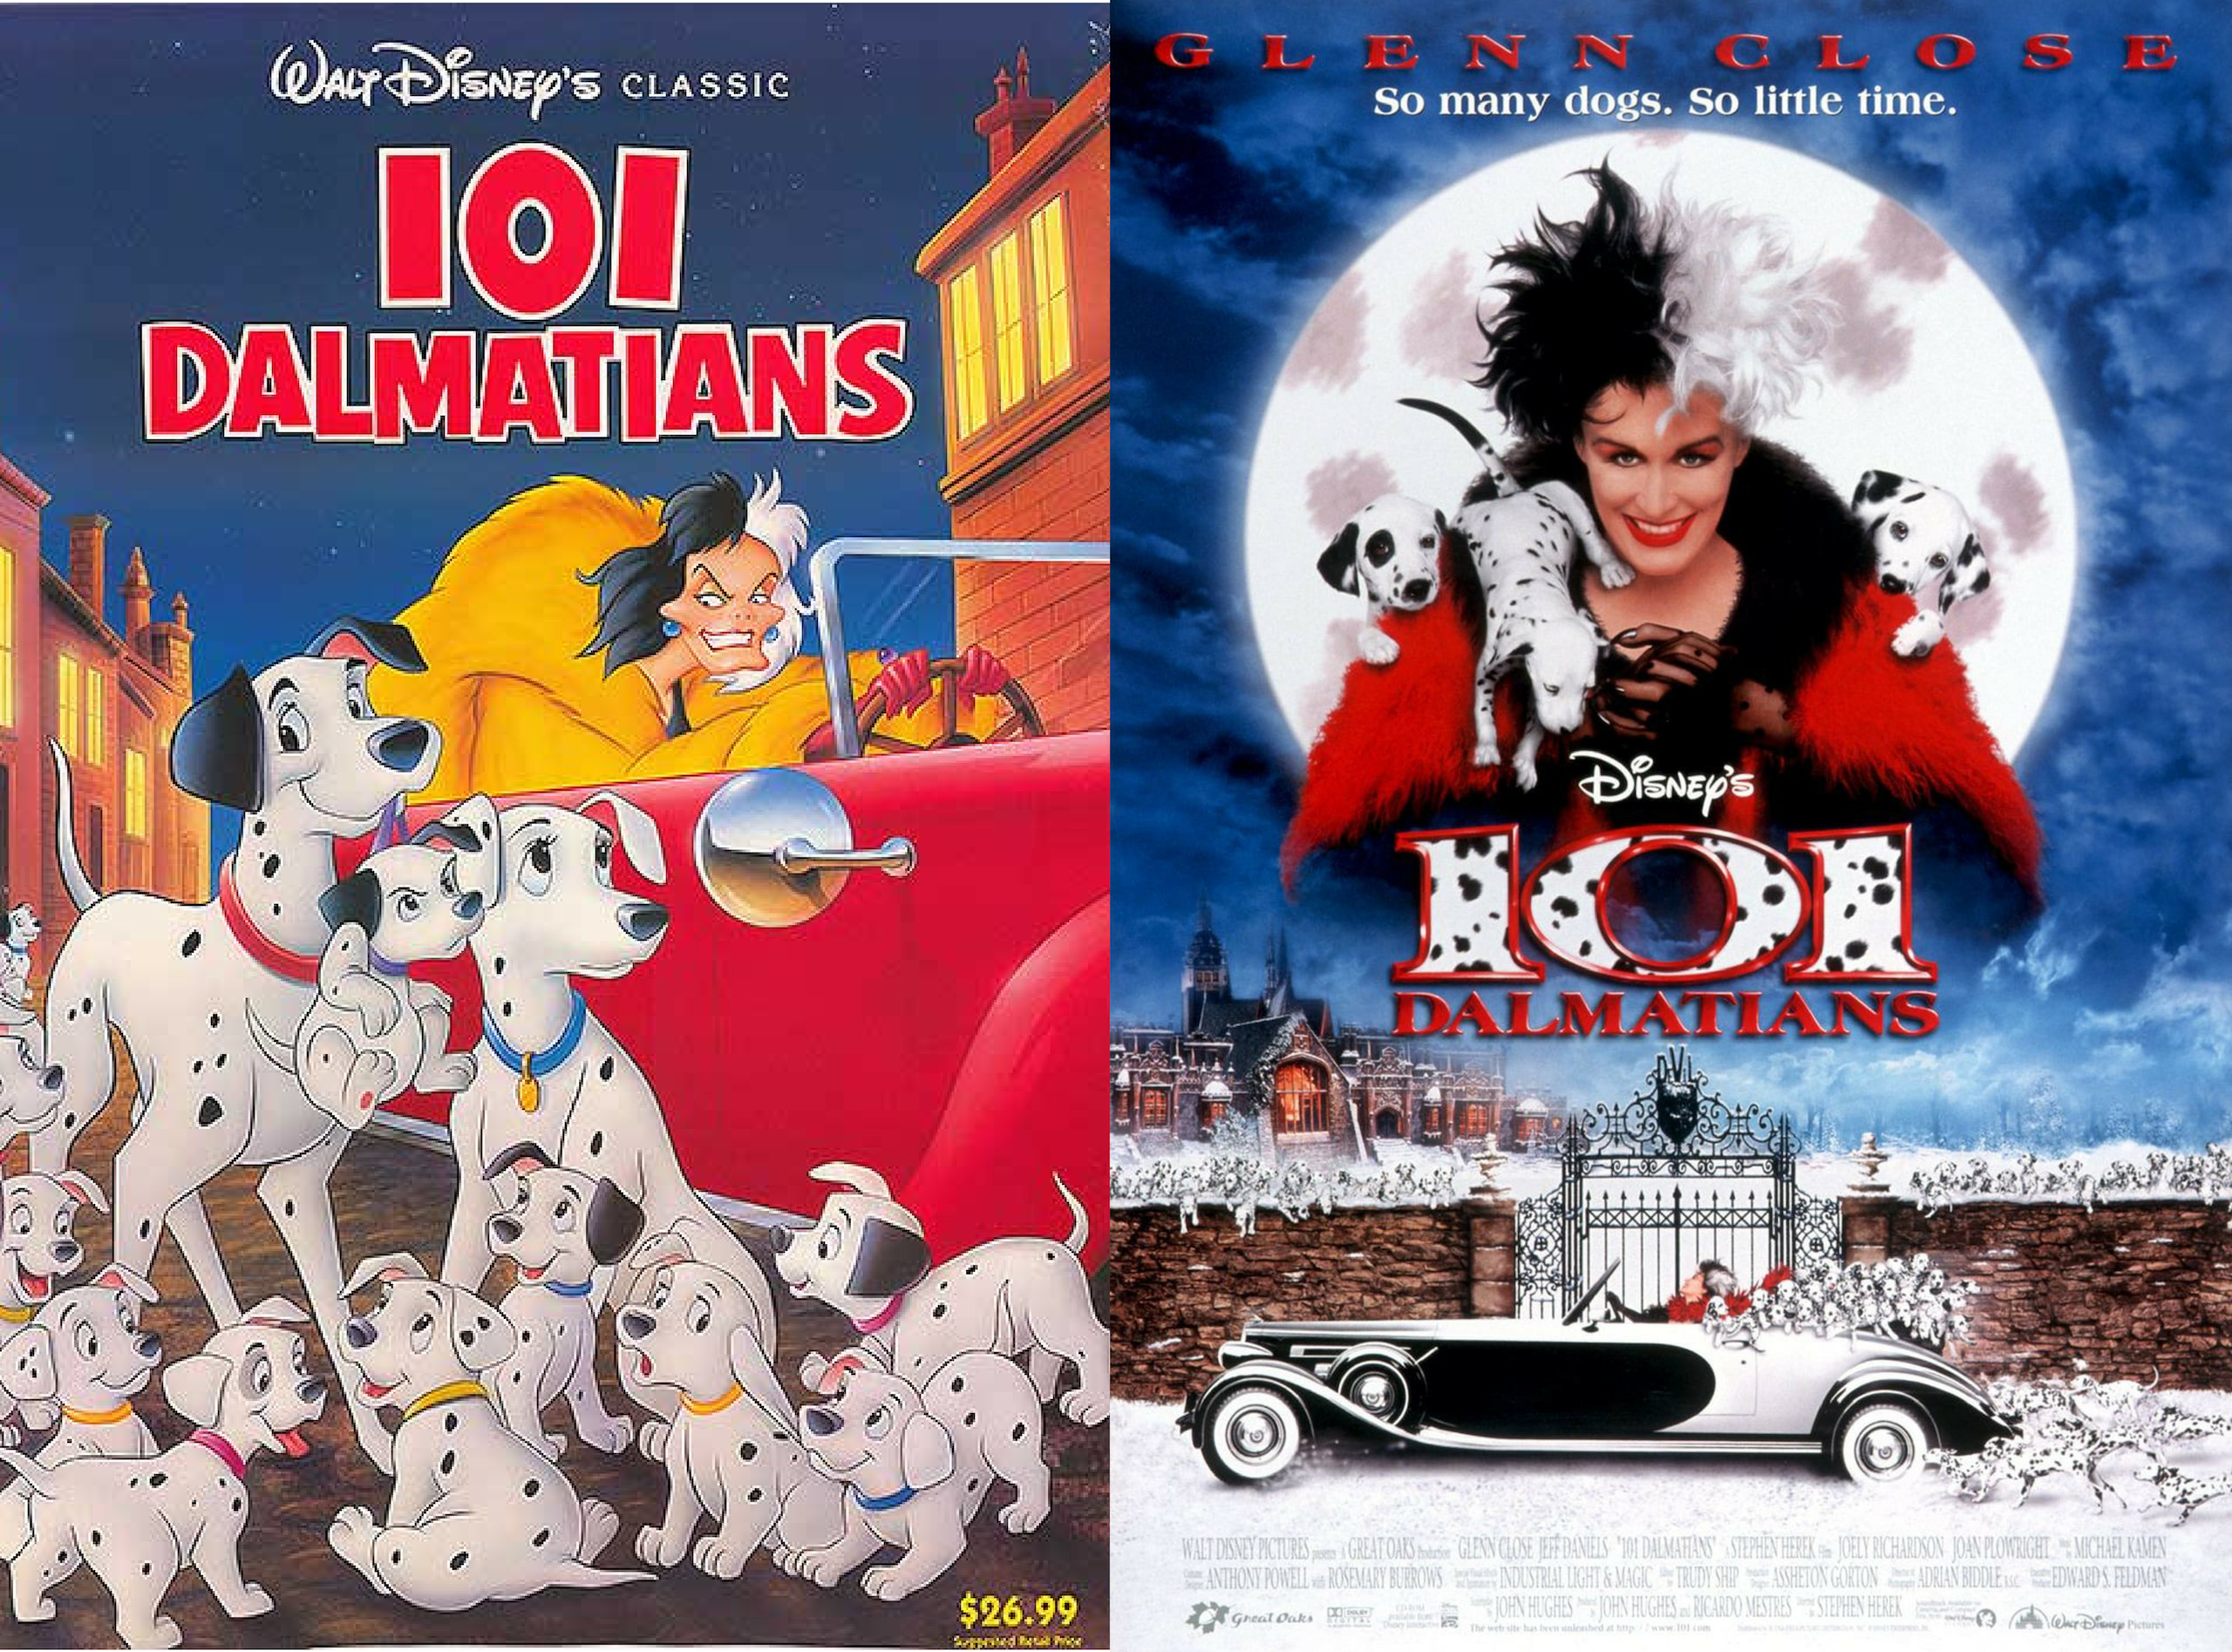 All The Disney Live-Action Remakes That Are Coming Soon | Nova 969